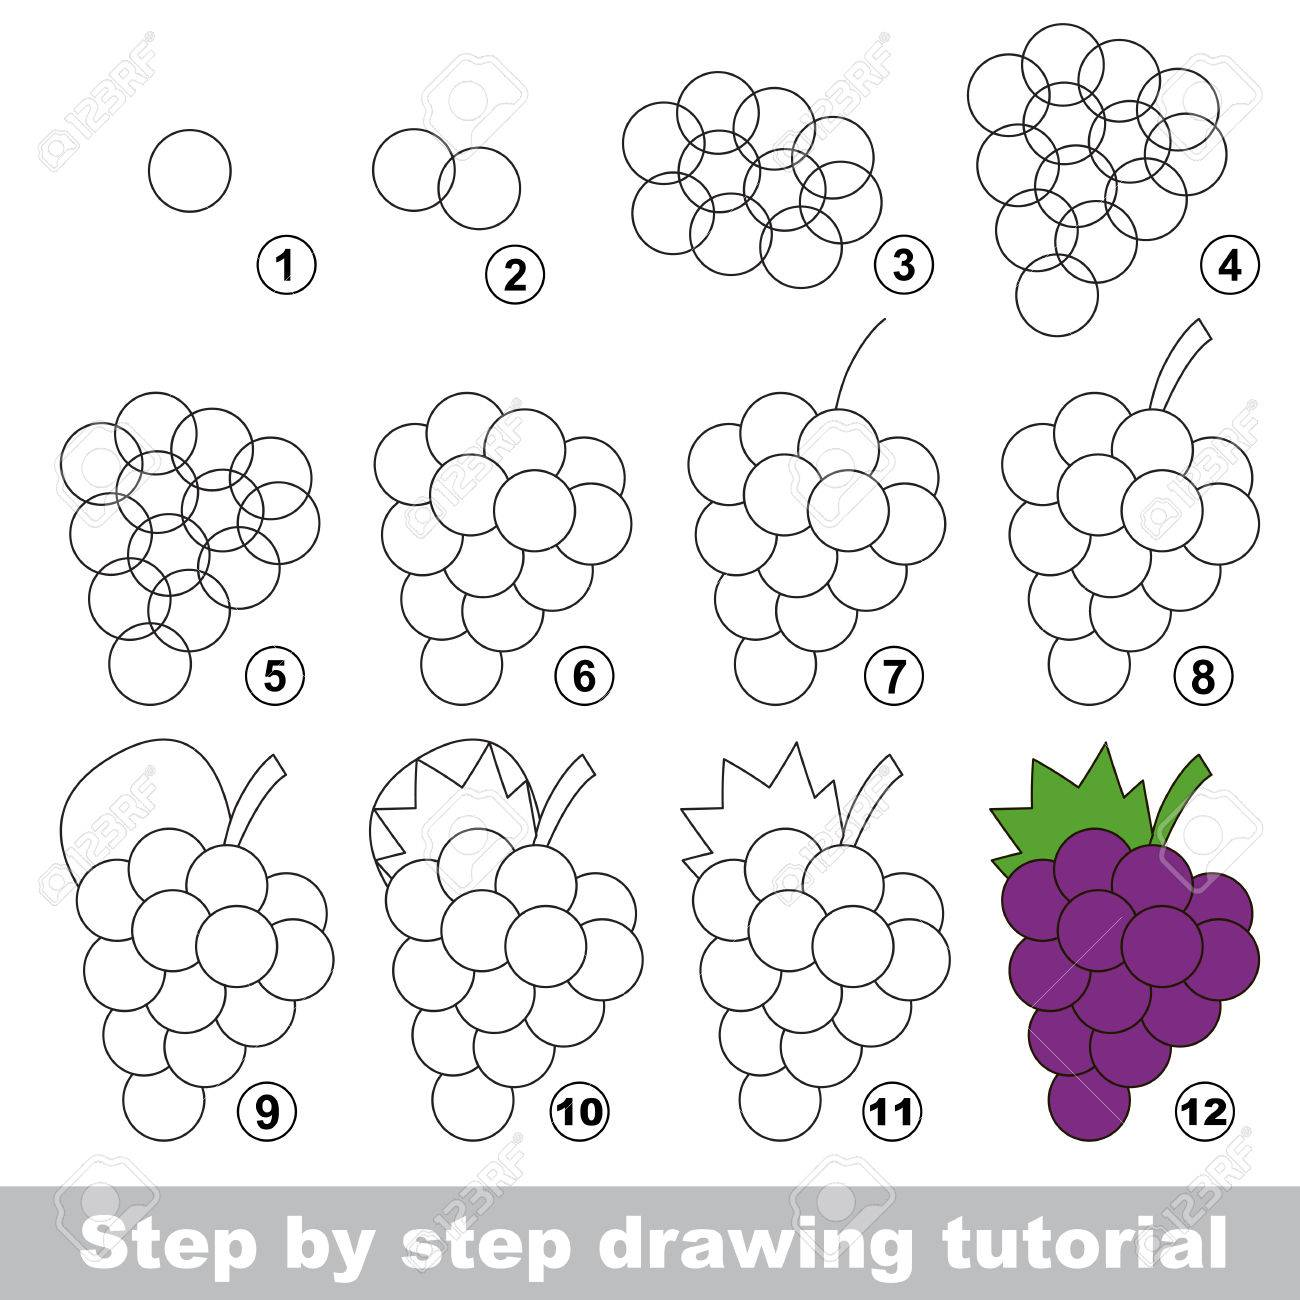 Drawing Tutorial For Children Easy Educational Kid Game Simple Royalty Free Cliparts Vectors And Stock Illustration Image 64757017